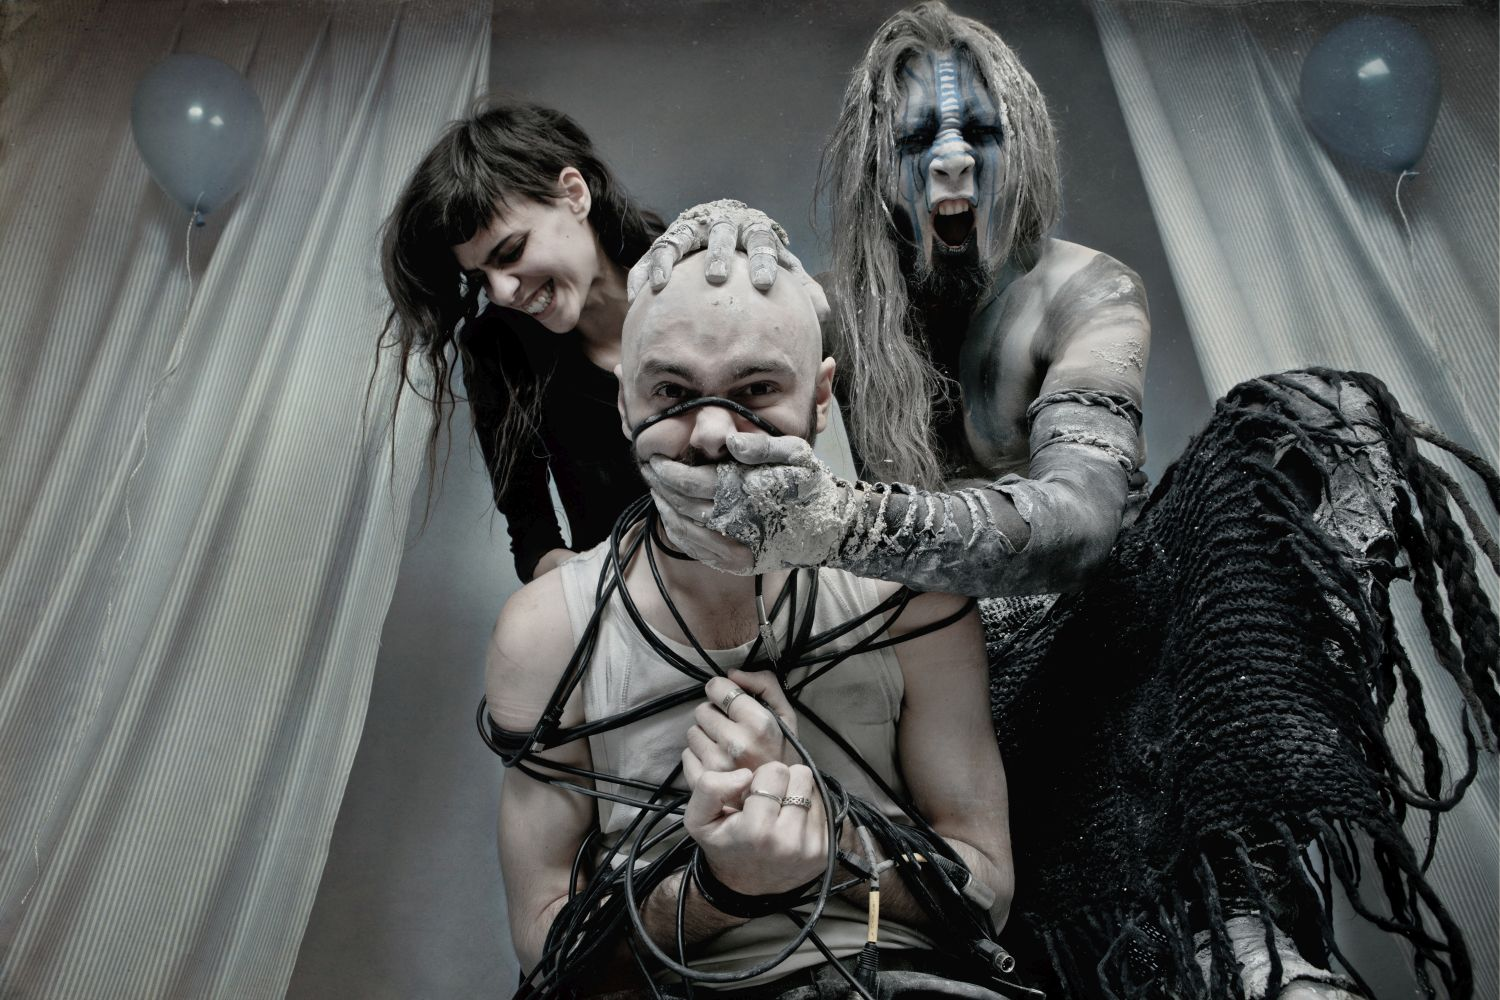 igorrr_band_2015_01_credits_svarta_photography.jpg